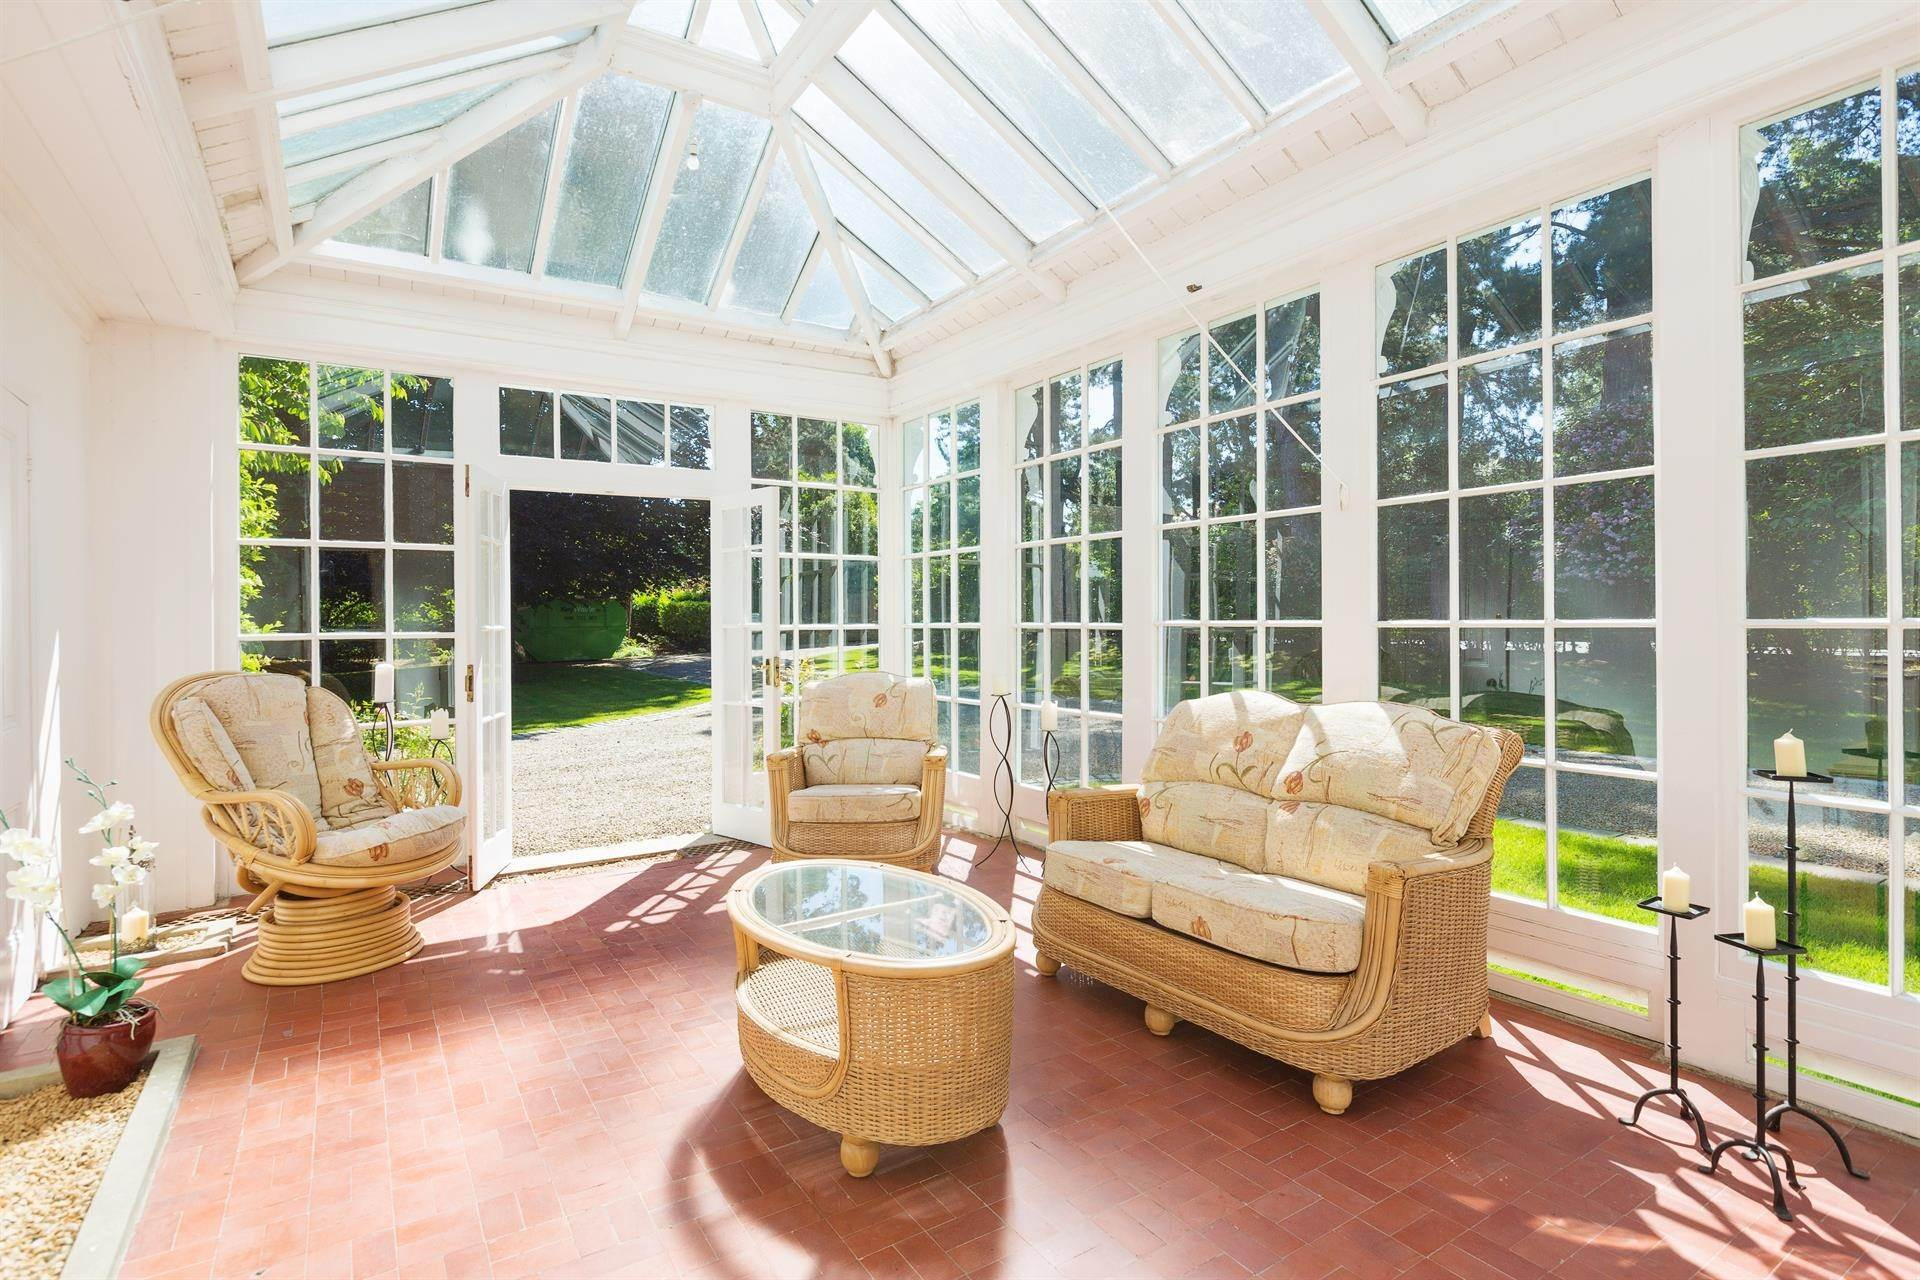 14. Single Family Home for Sale at Foxrock, Ireland